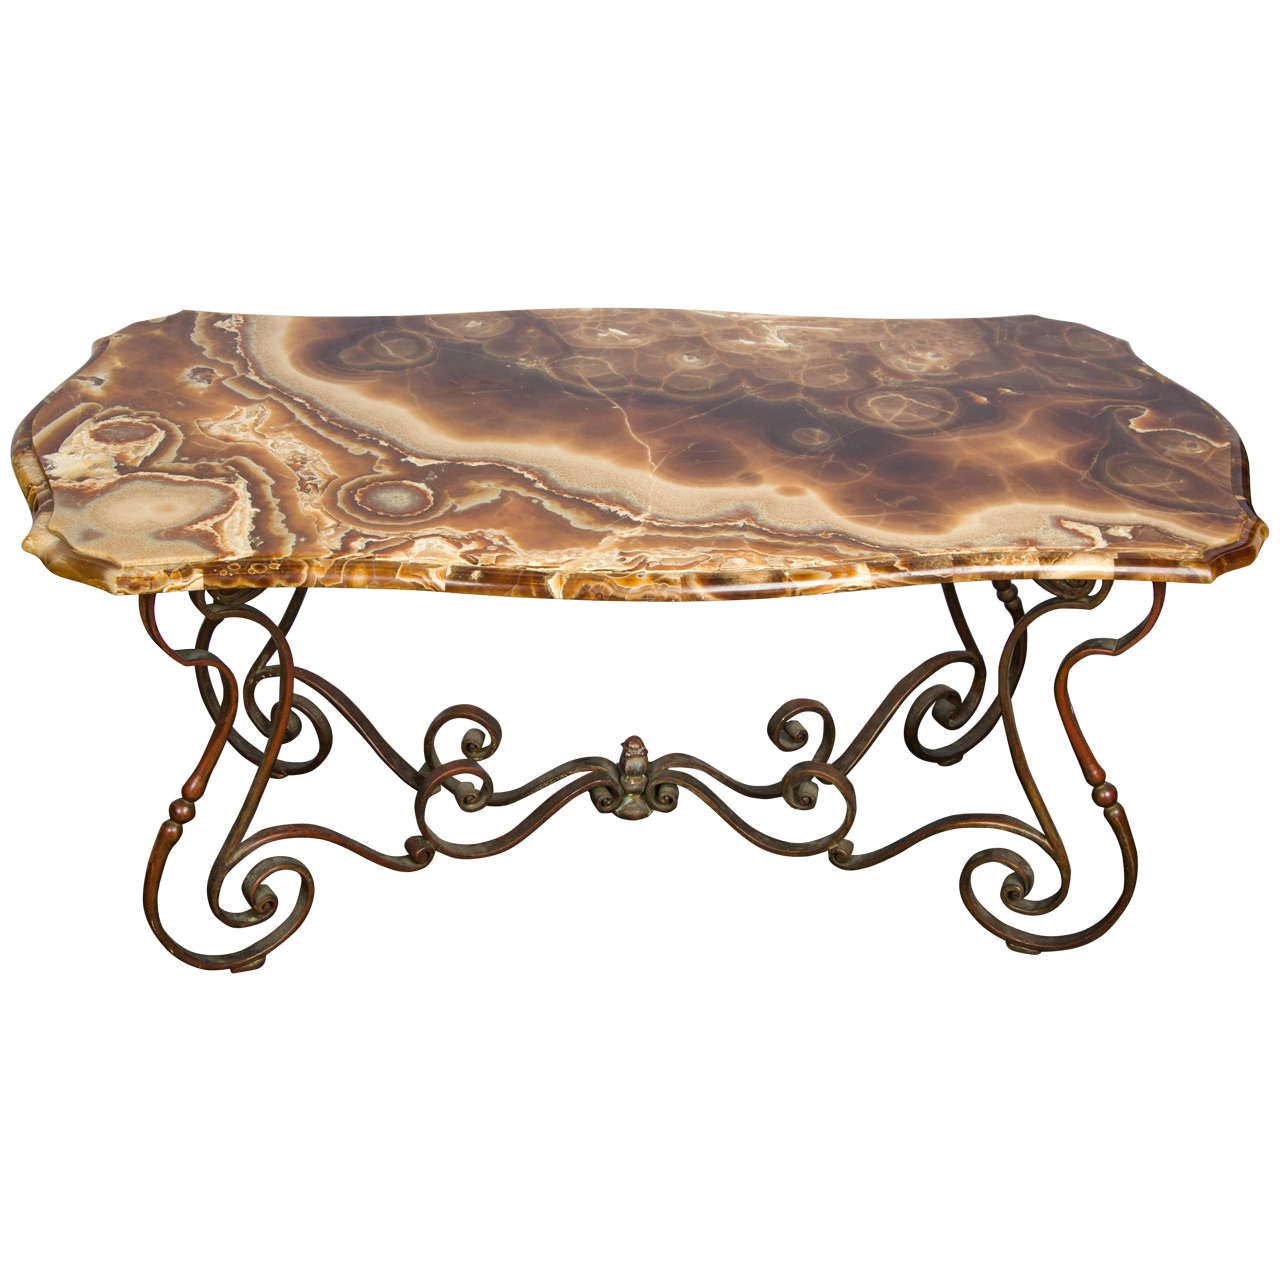 1940s italian coffee table in style of neo baroque at 1stdibs 1940s italian coffee table in style of neo baroque 1 geotapseo Image collections